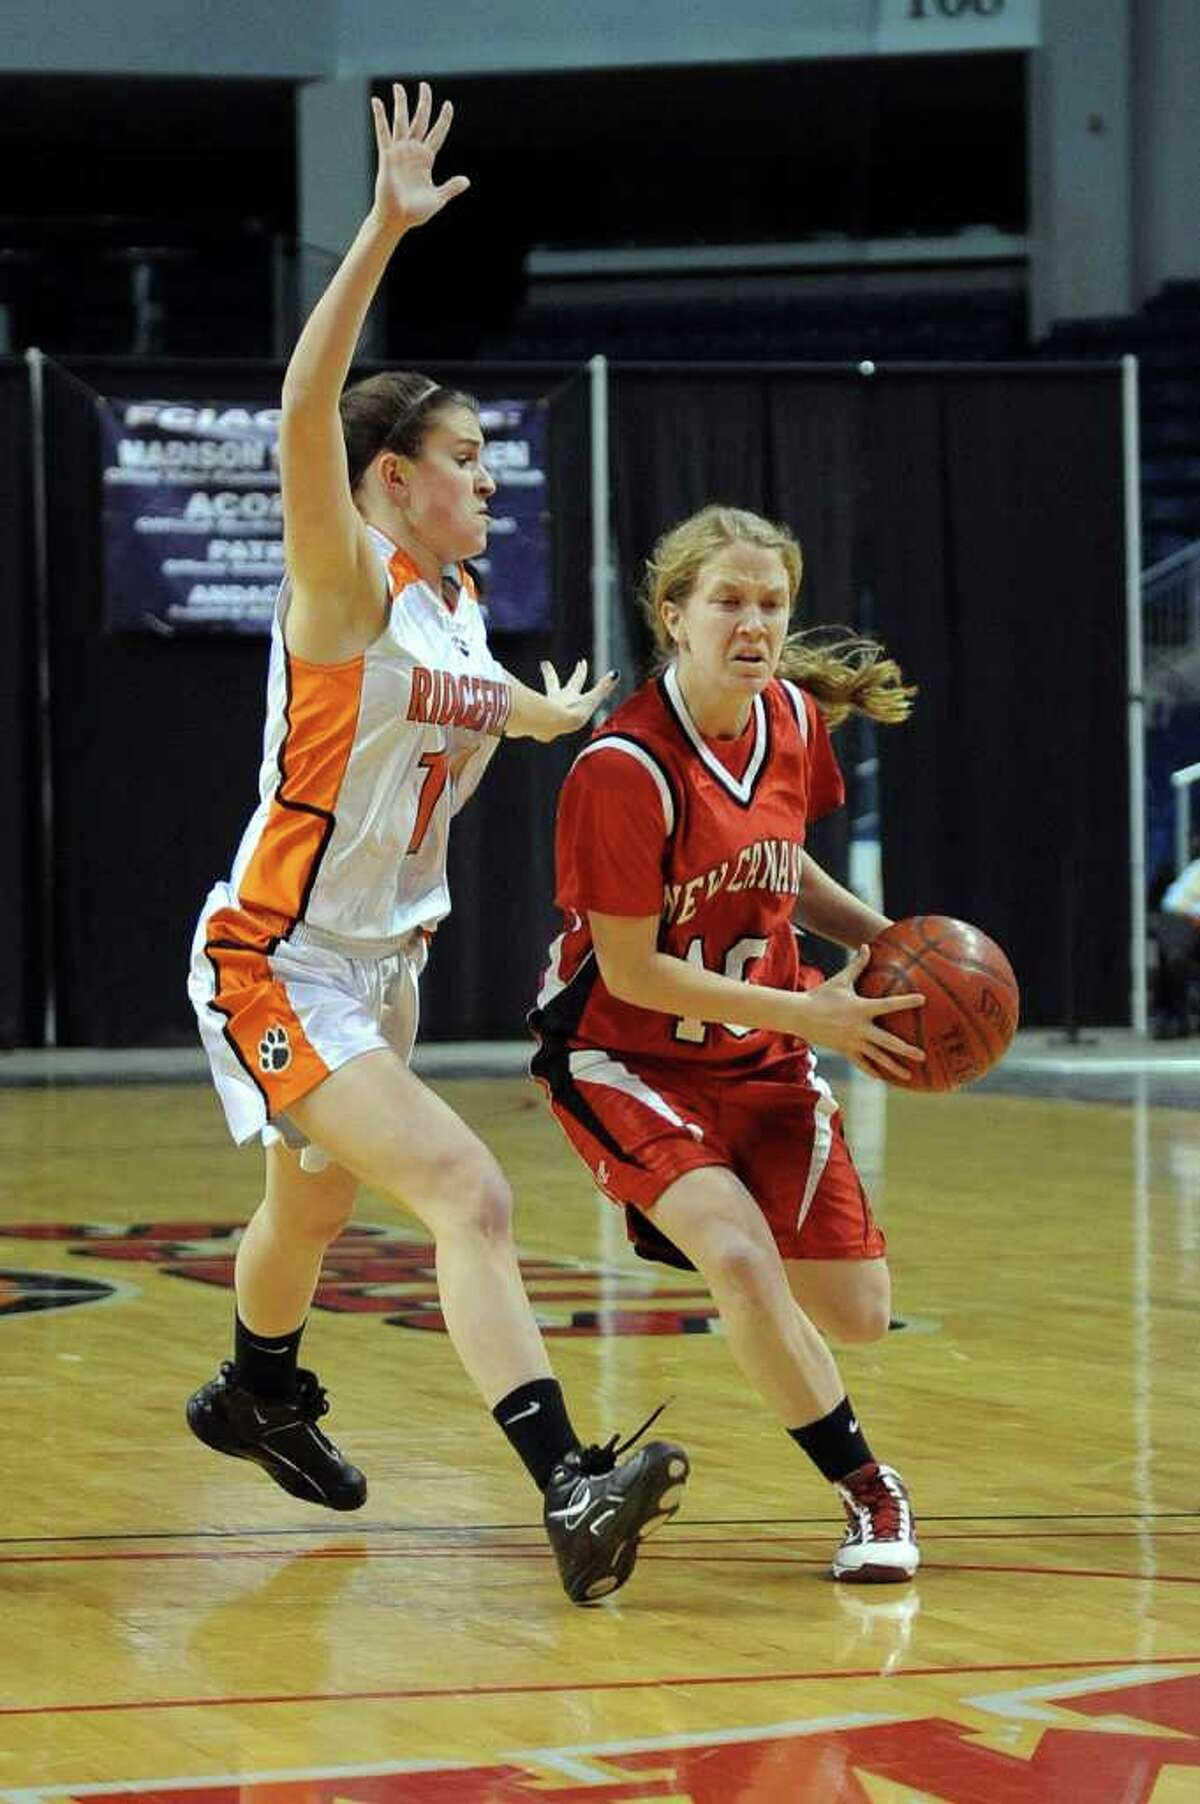 New Canaan's Sara Mannelly dribbles past Ridgefield's Kathryn Cholko during Tuesday's FCIAC girls basketball semifinal game at the Webster Bank Arena at Harbor Yard on Feburary 22, 2011.